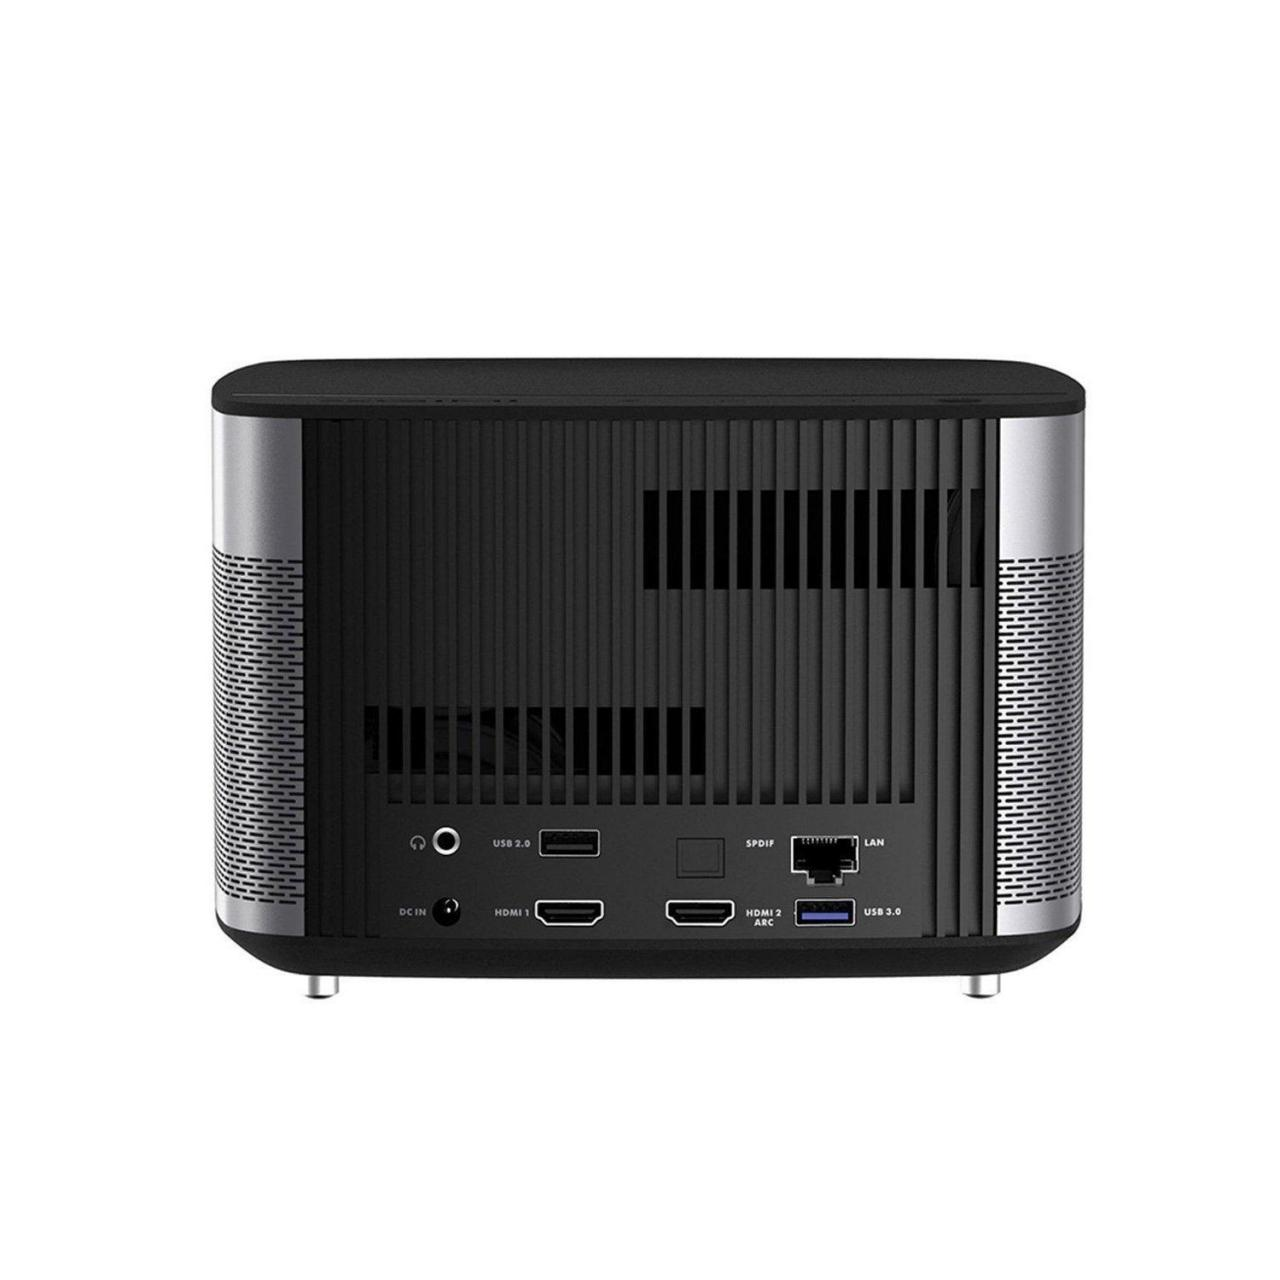 Xgimi H1 1080P Projector